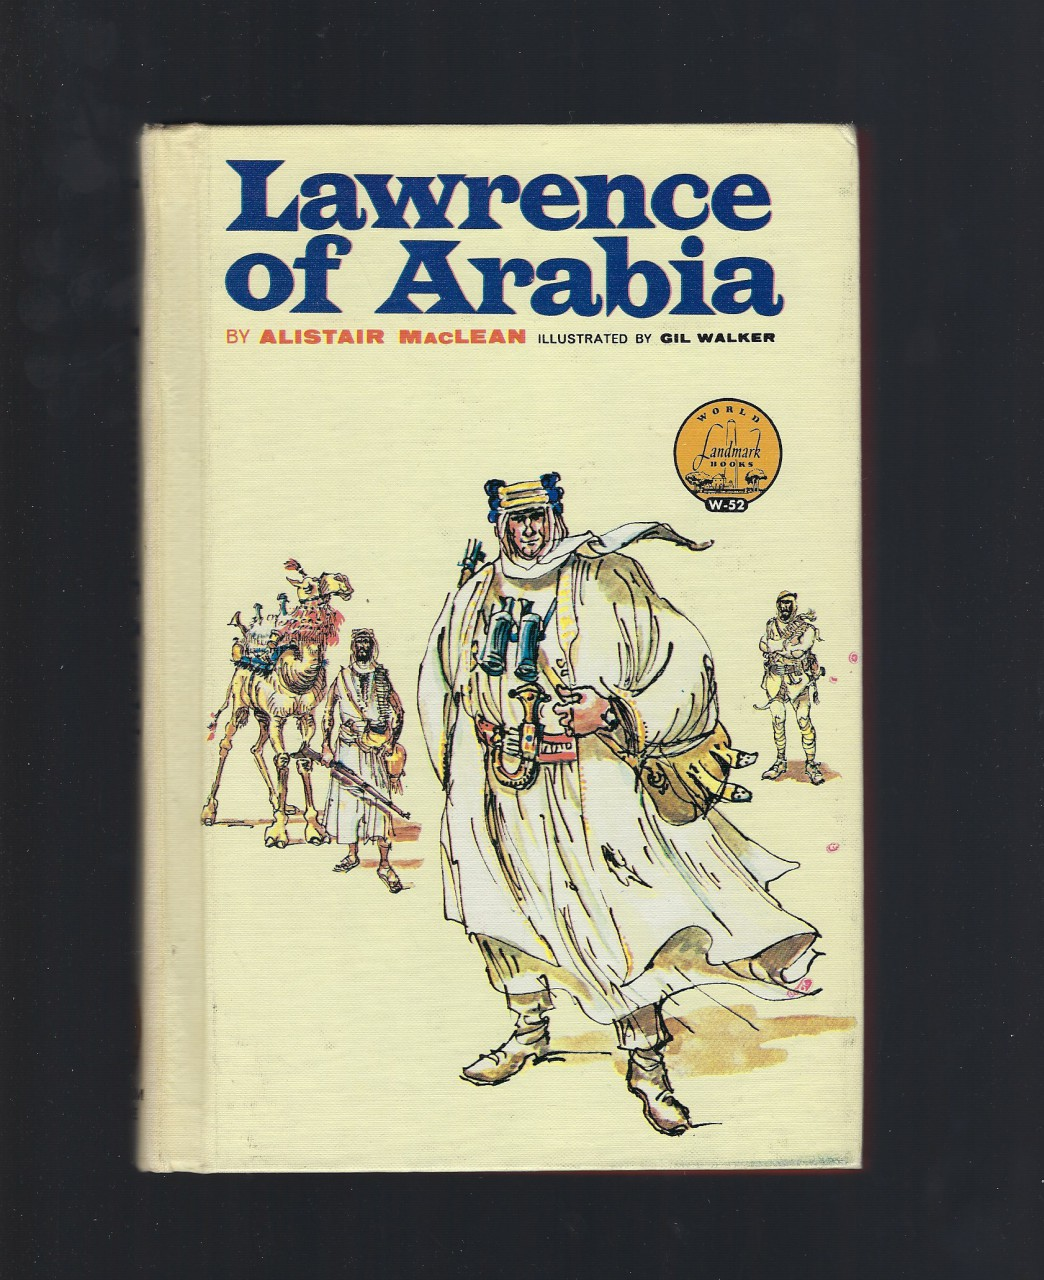 Lawrence of Arabia World Landmark # 52 HB/PC, Alistair MacLean; GIl Walker [Illustrator]